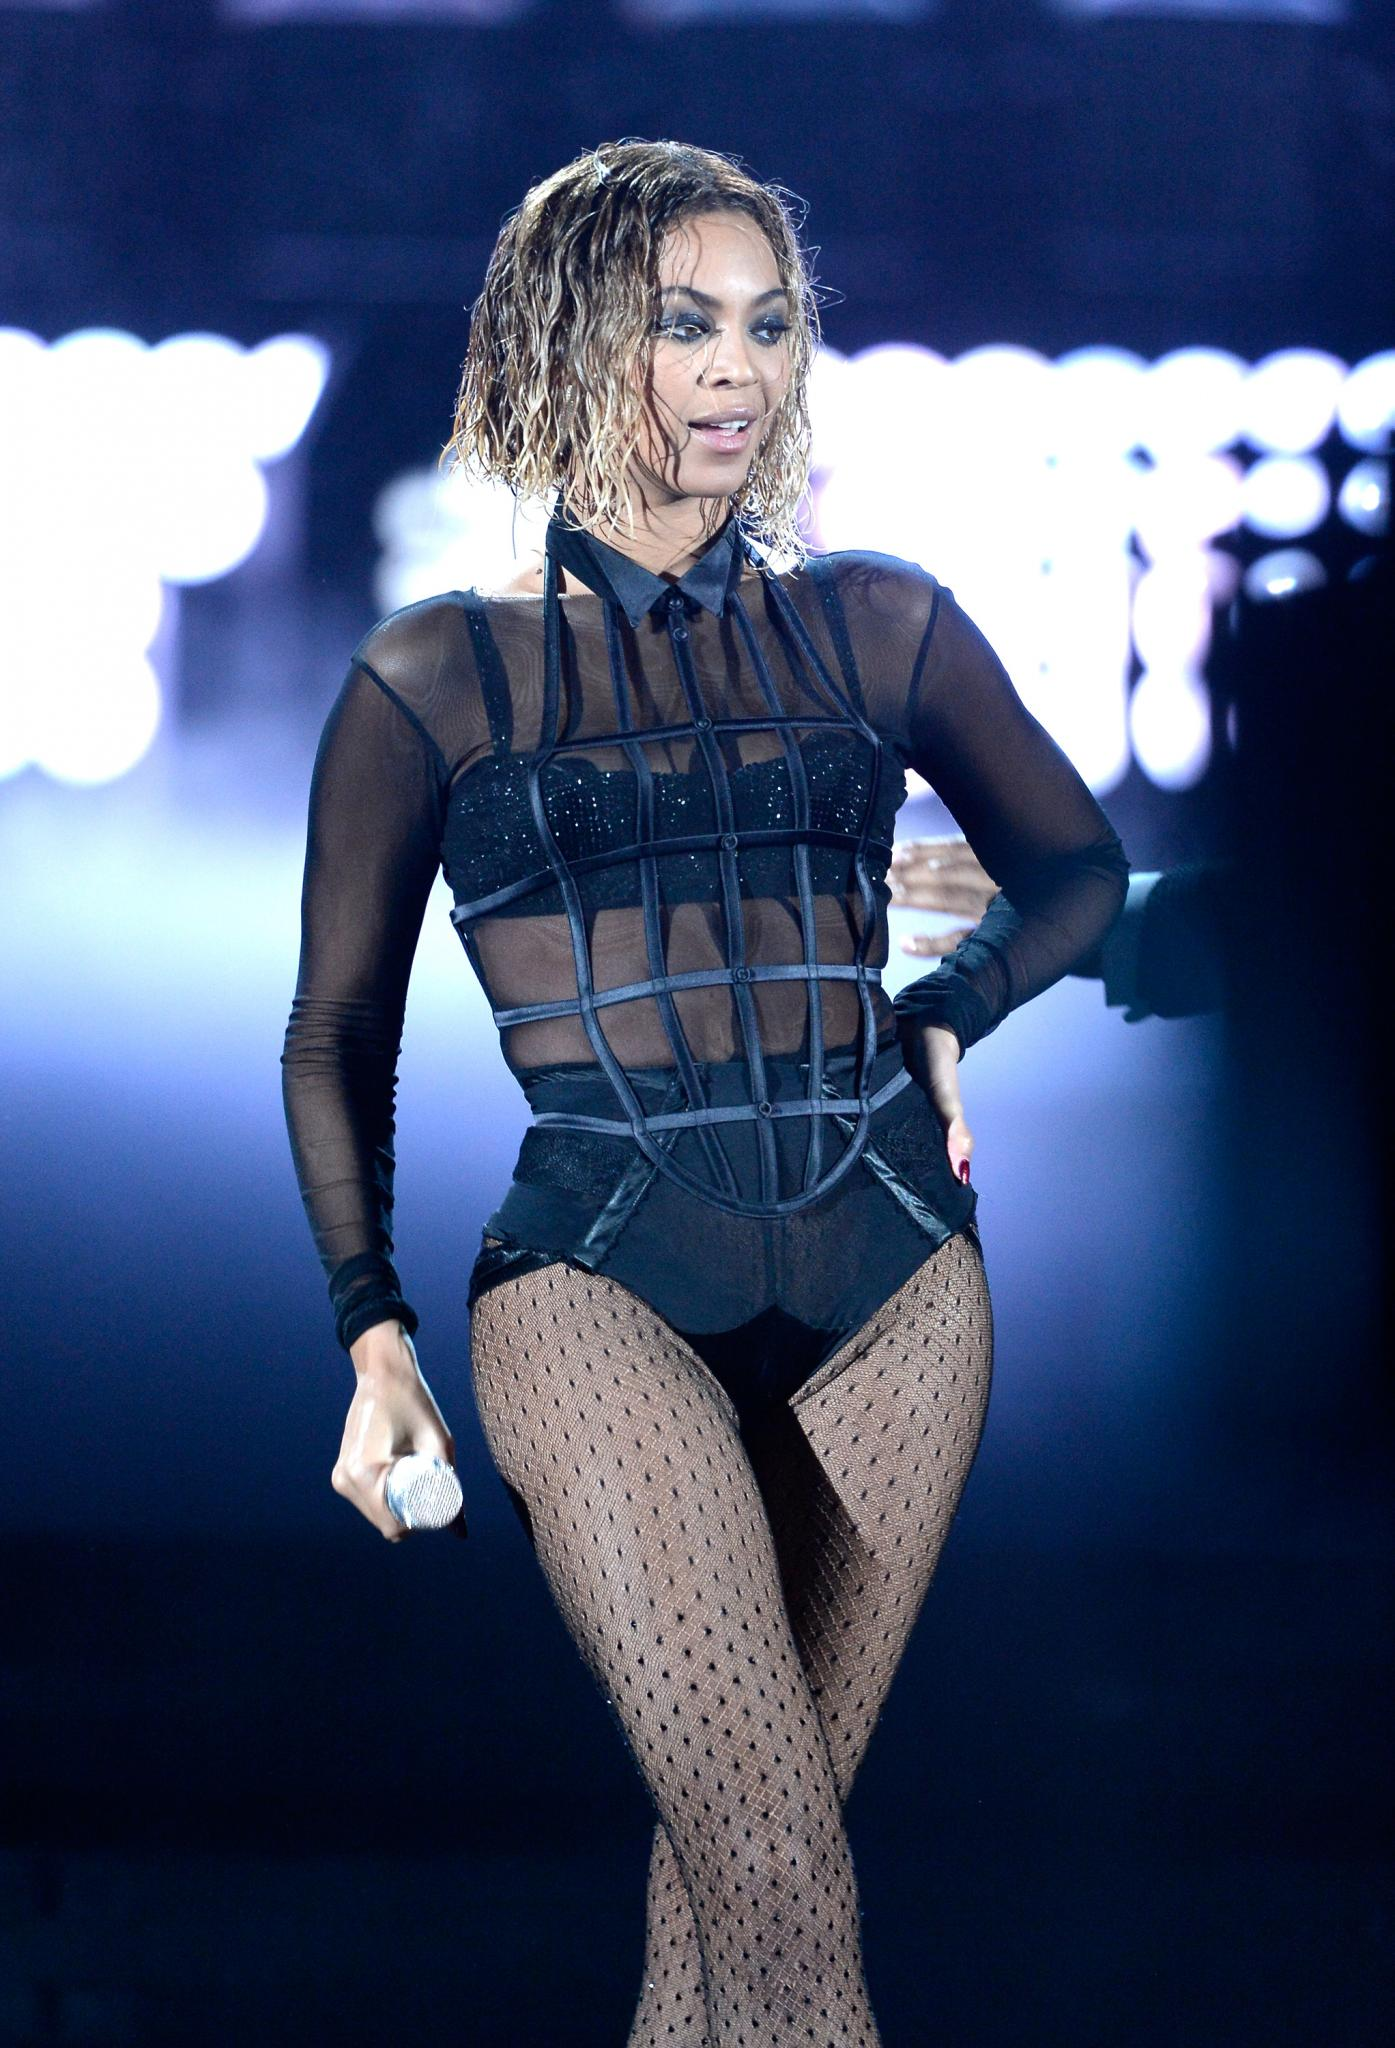 Beyonce Lands Top Spot on Forbes Celebrity 100 List